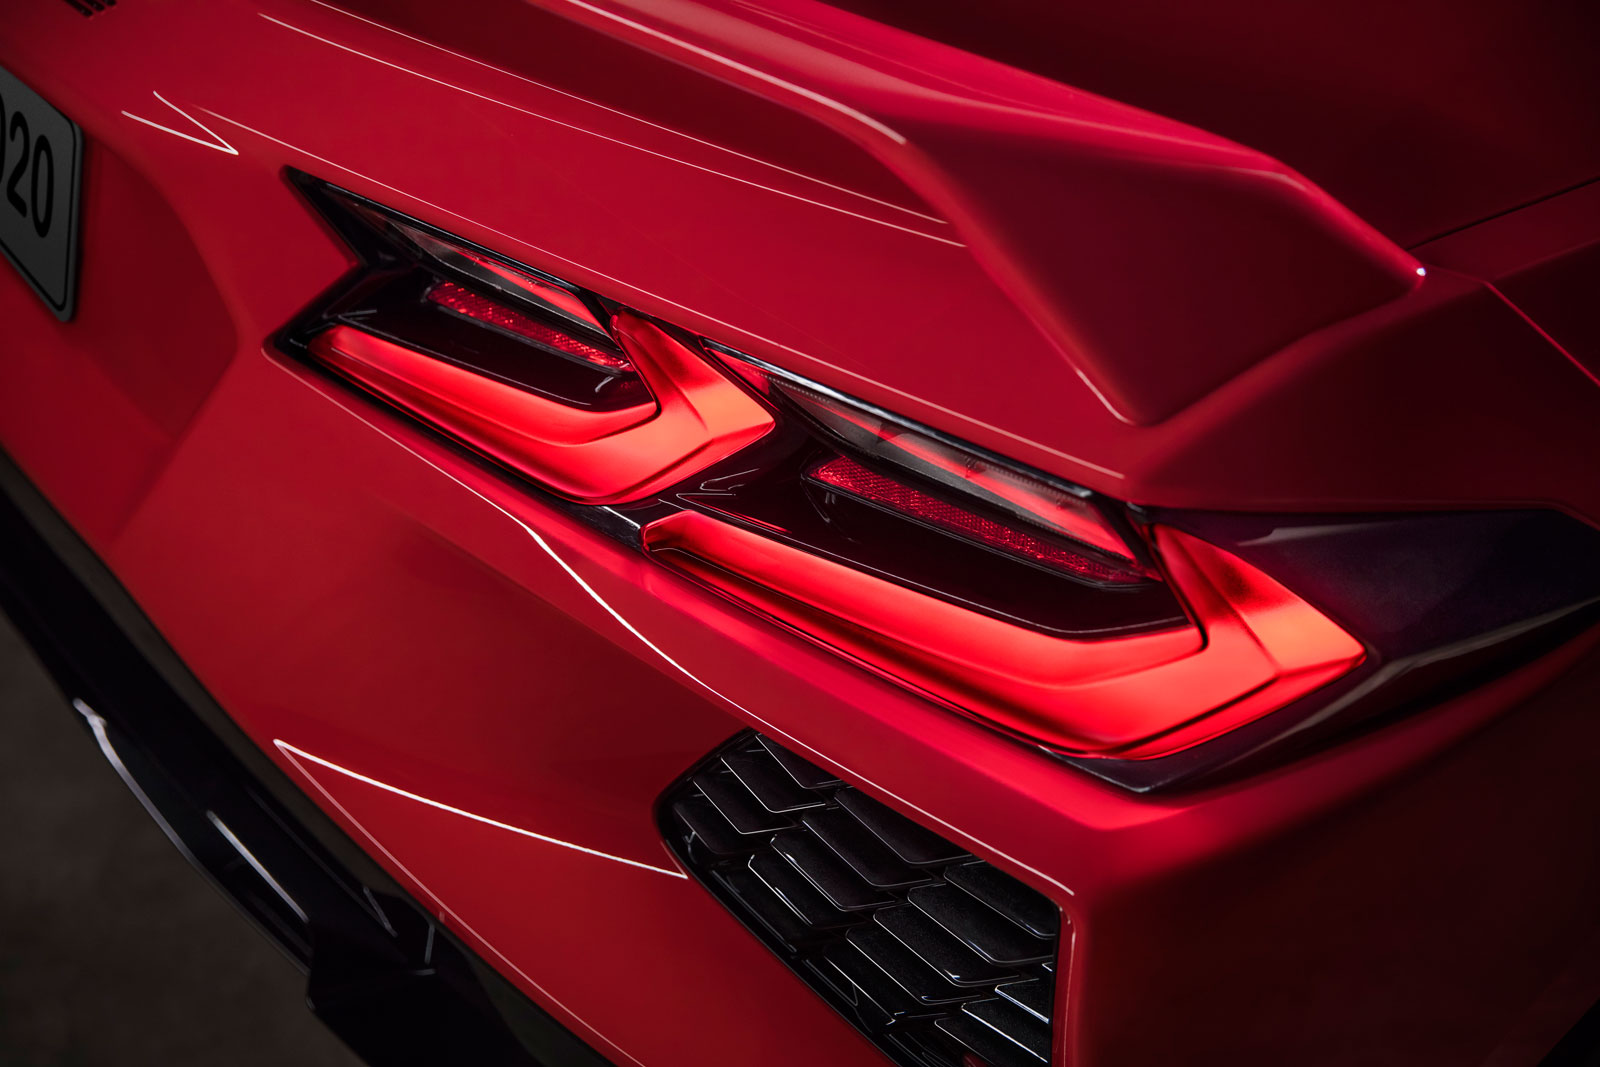 2020 Chevrolet Corvette Stingray Tail Lights - Car Body Design